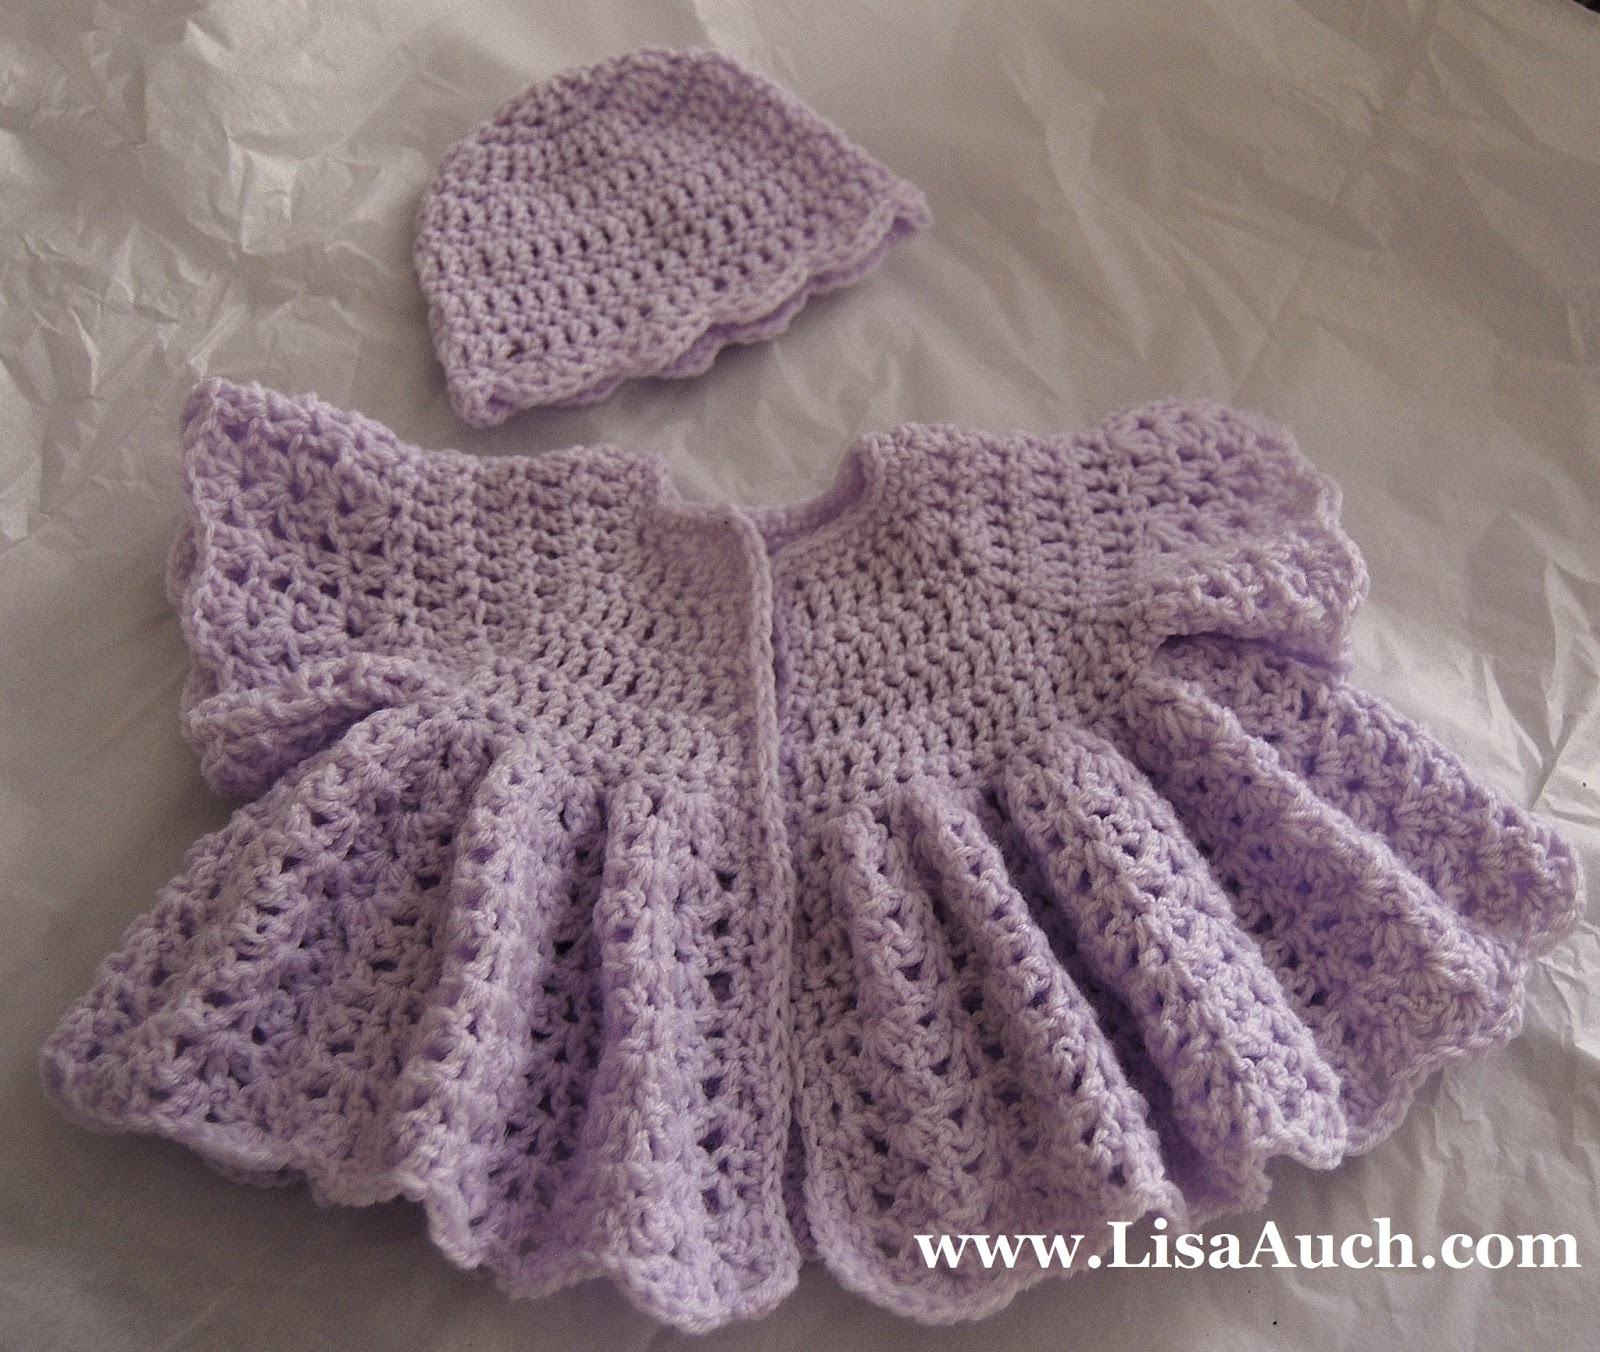 Crochet Baby Boy Sweater Free Patterns : Free Crochet Sweater Patterns for Babies